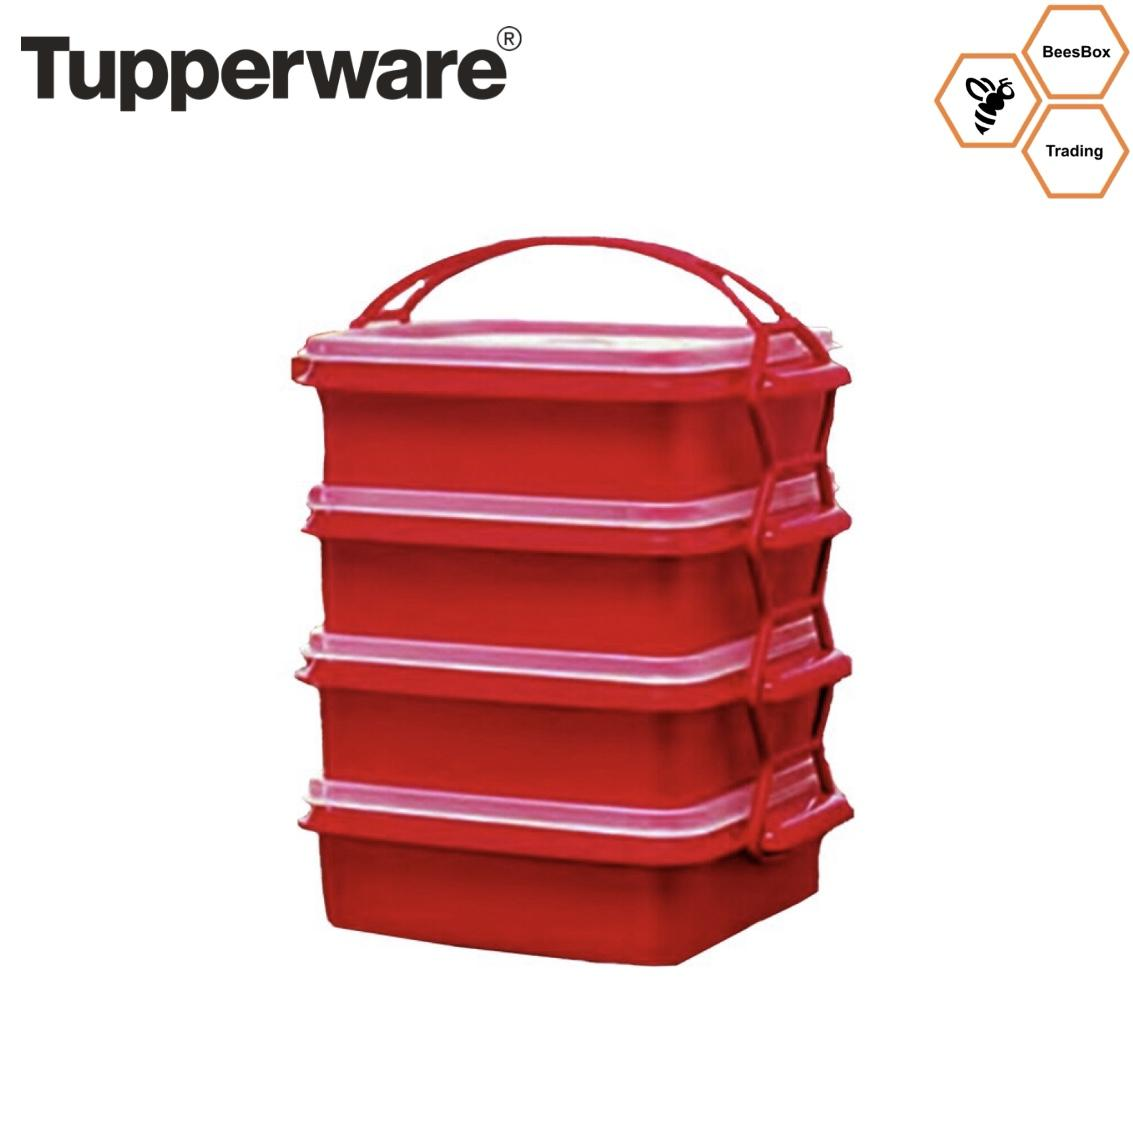 Tupperware Brands Philippines Price List Water Luxury Cookware Ampamp Elegenzia Set Goody Box Lunchbox Christmas Red Color Food Storage Container